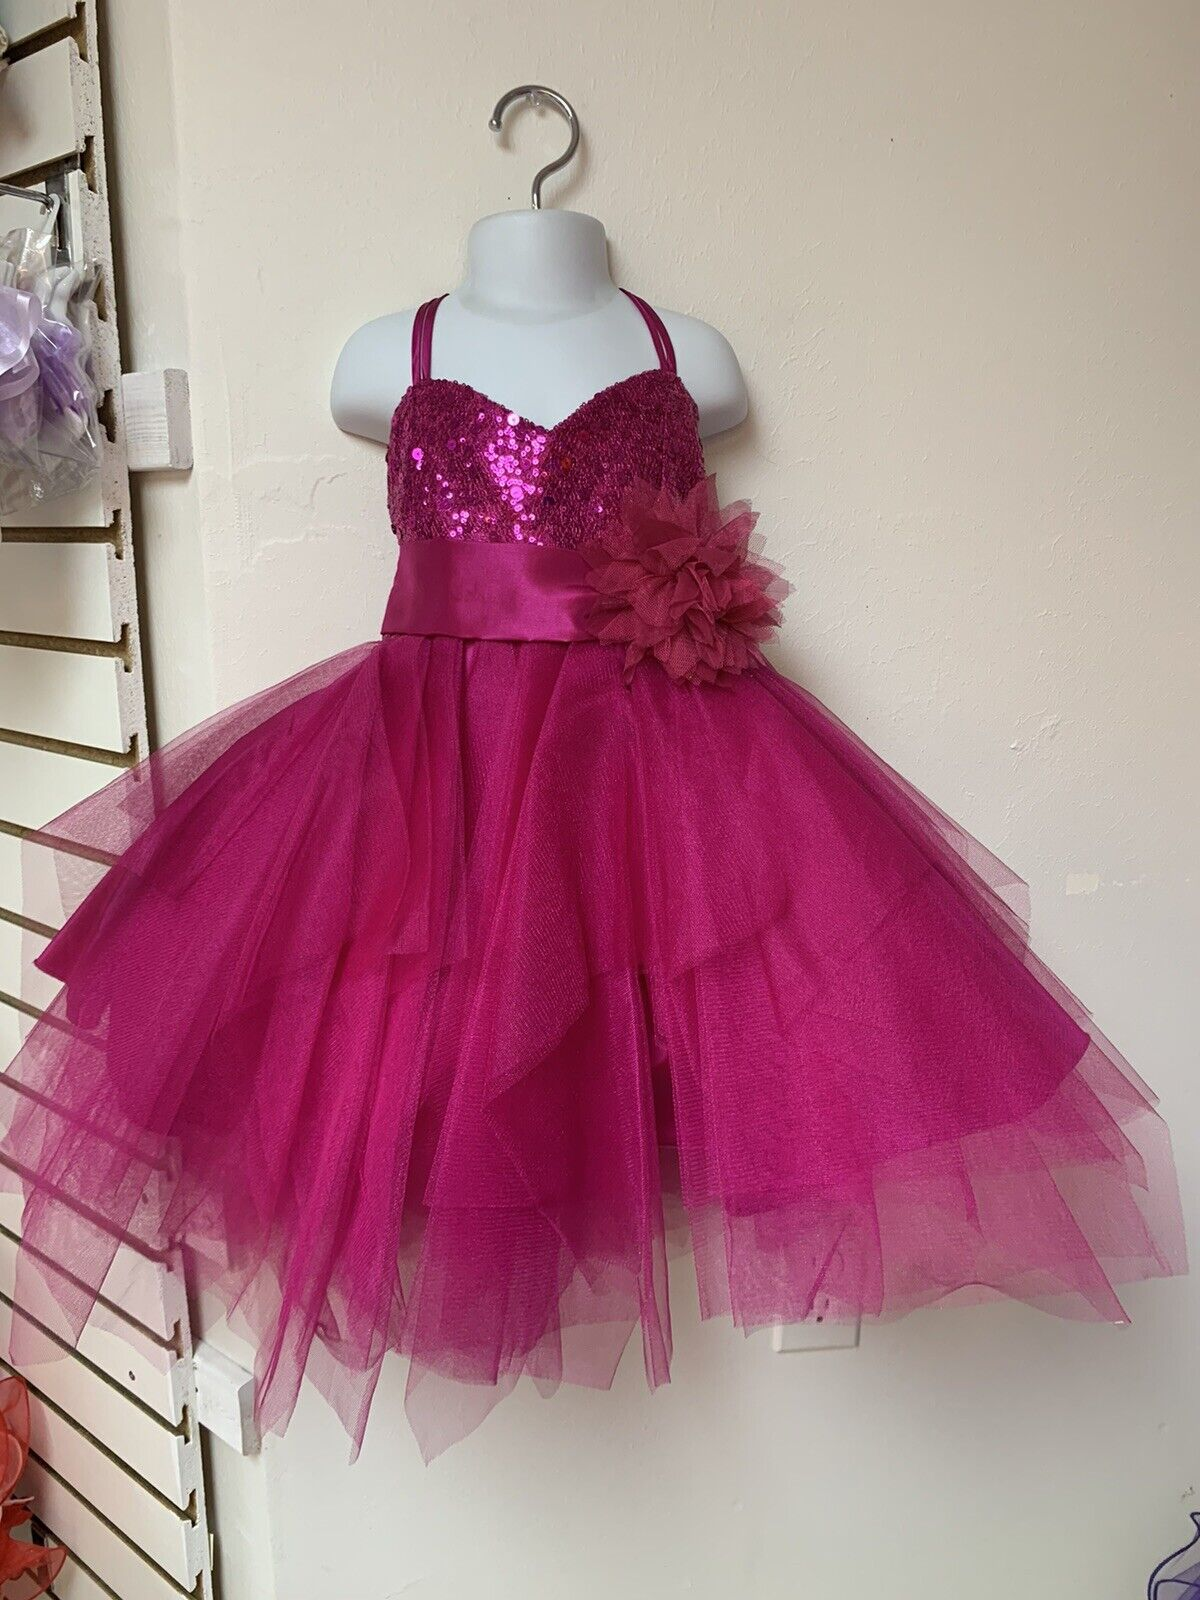 2 Easter Pageant Crowning Flower girl Dance Special Occasion Formal Dress NWT